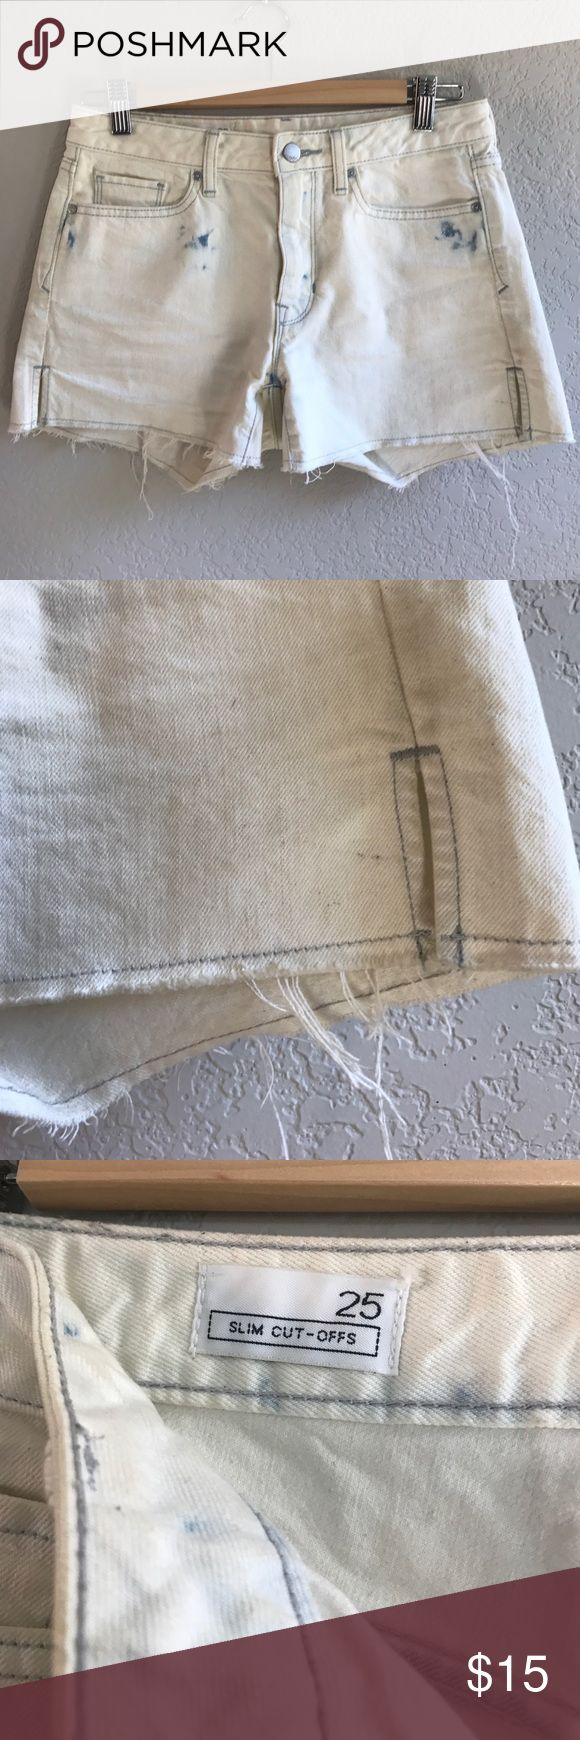 """Gap Denim Slim Cutoff shorts in Bleach Wash Gap Denim Slim Cutoff shorts in aged white bleach wash. Meant to look old and bleached. Good condition but little marks here and there, could be bleached easily. Side slits on legs for more room, mid rise and 3"""" inseam. GAP Shorts Jean Shorts"""